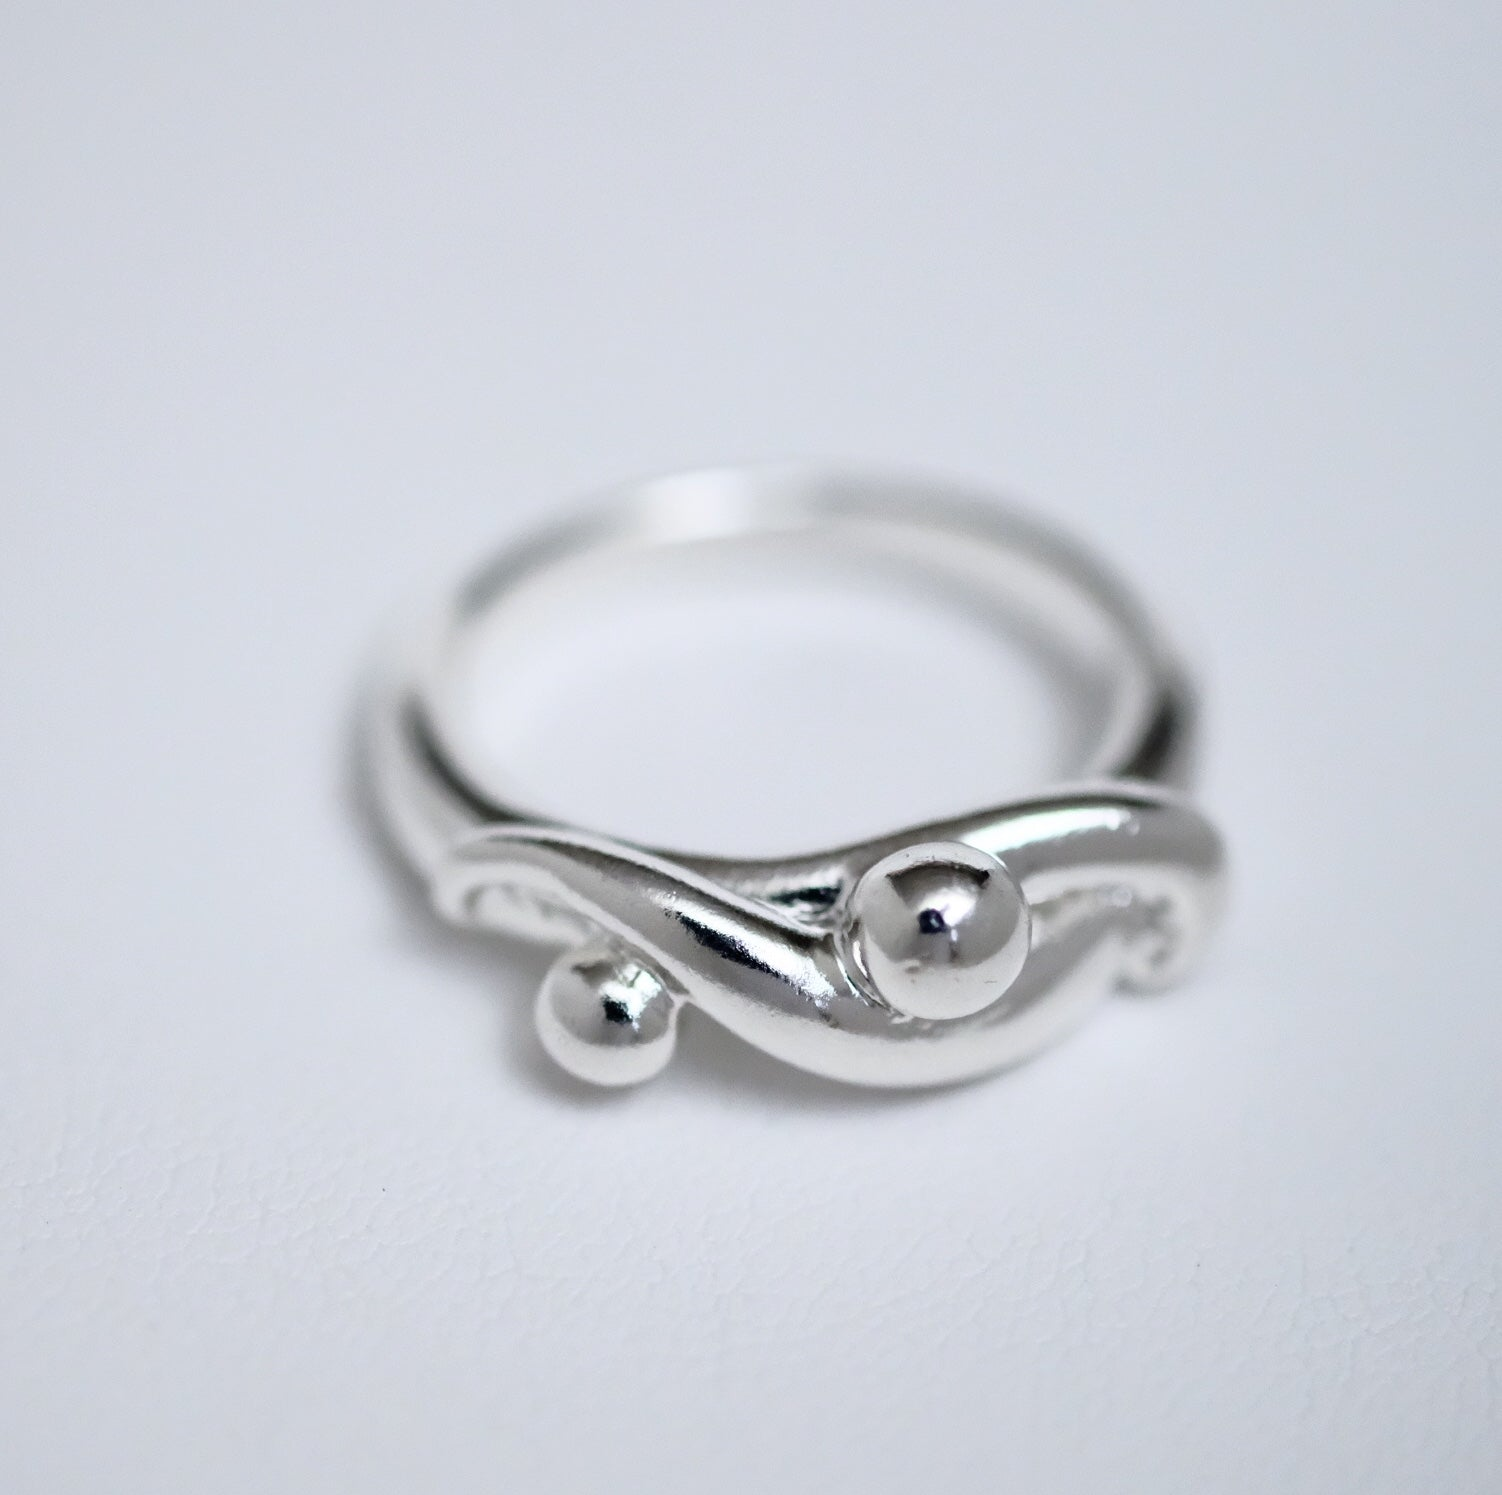 Carrying the Dream sterling silver ring by Joseph Chiang